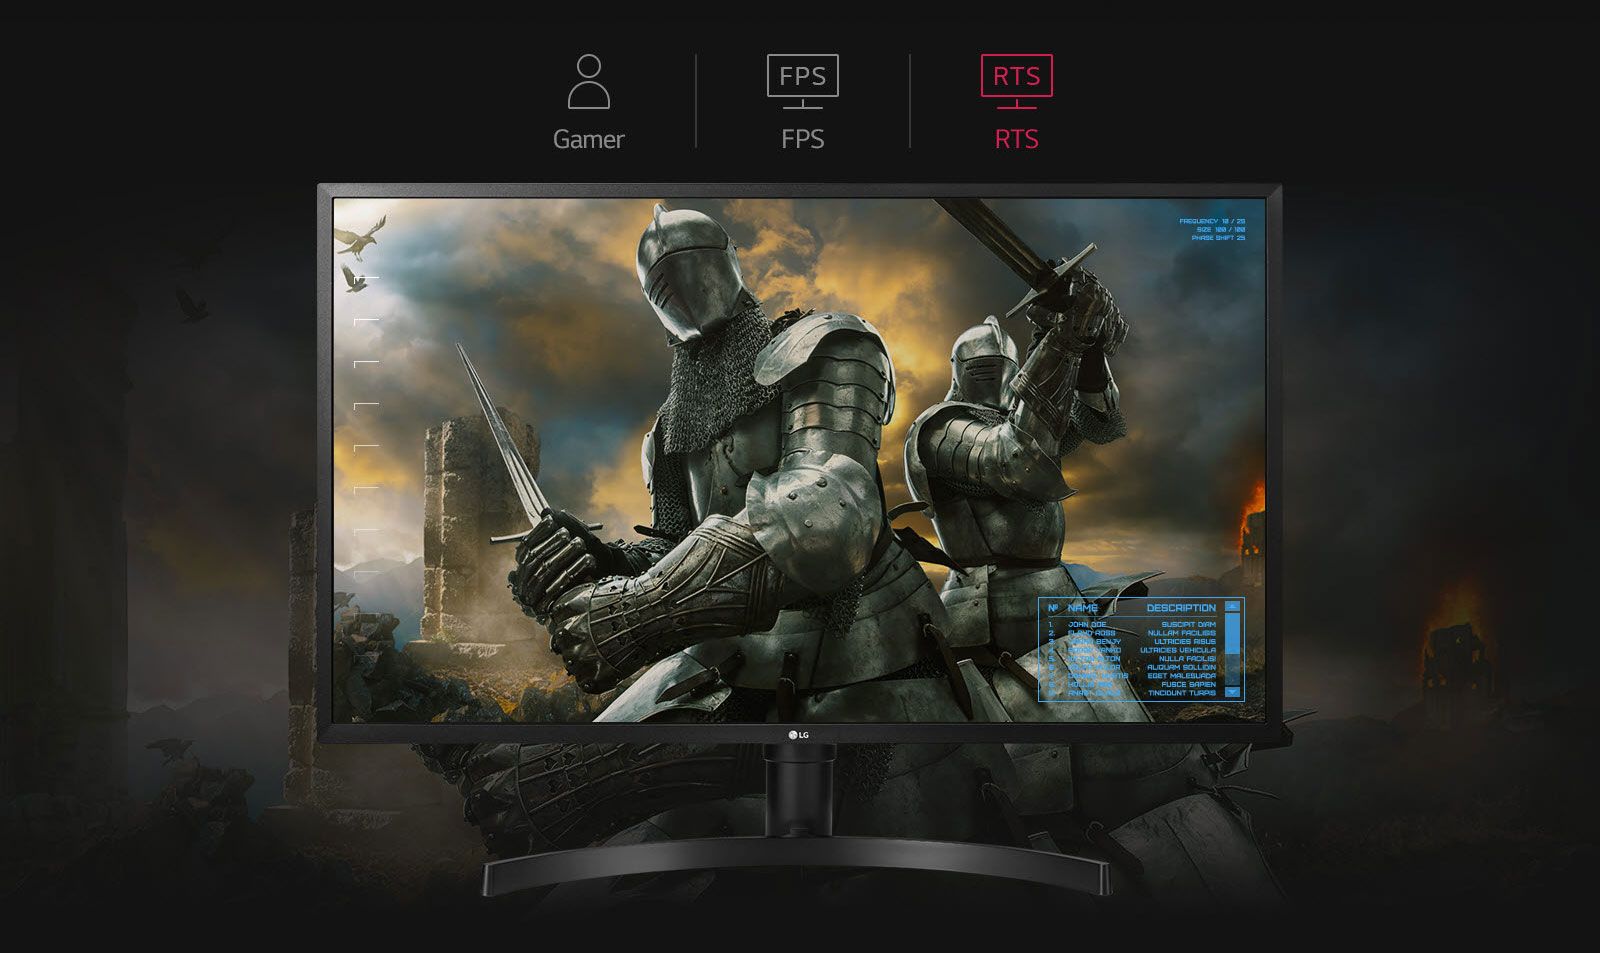 LG 32UK550-B monitor facing forward showing two armor clad knight in the mist of a burning, smokey battle